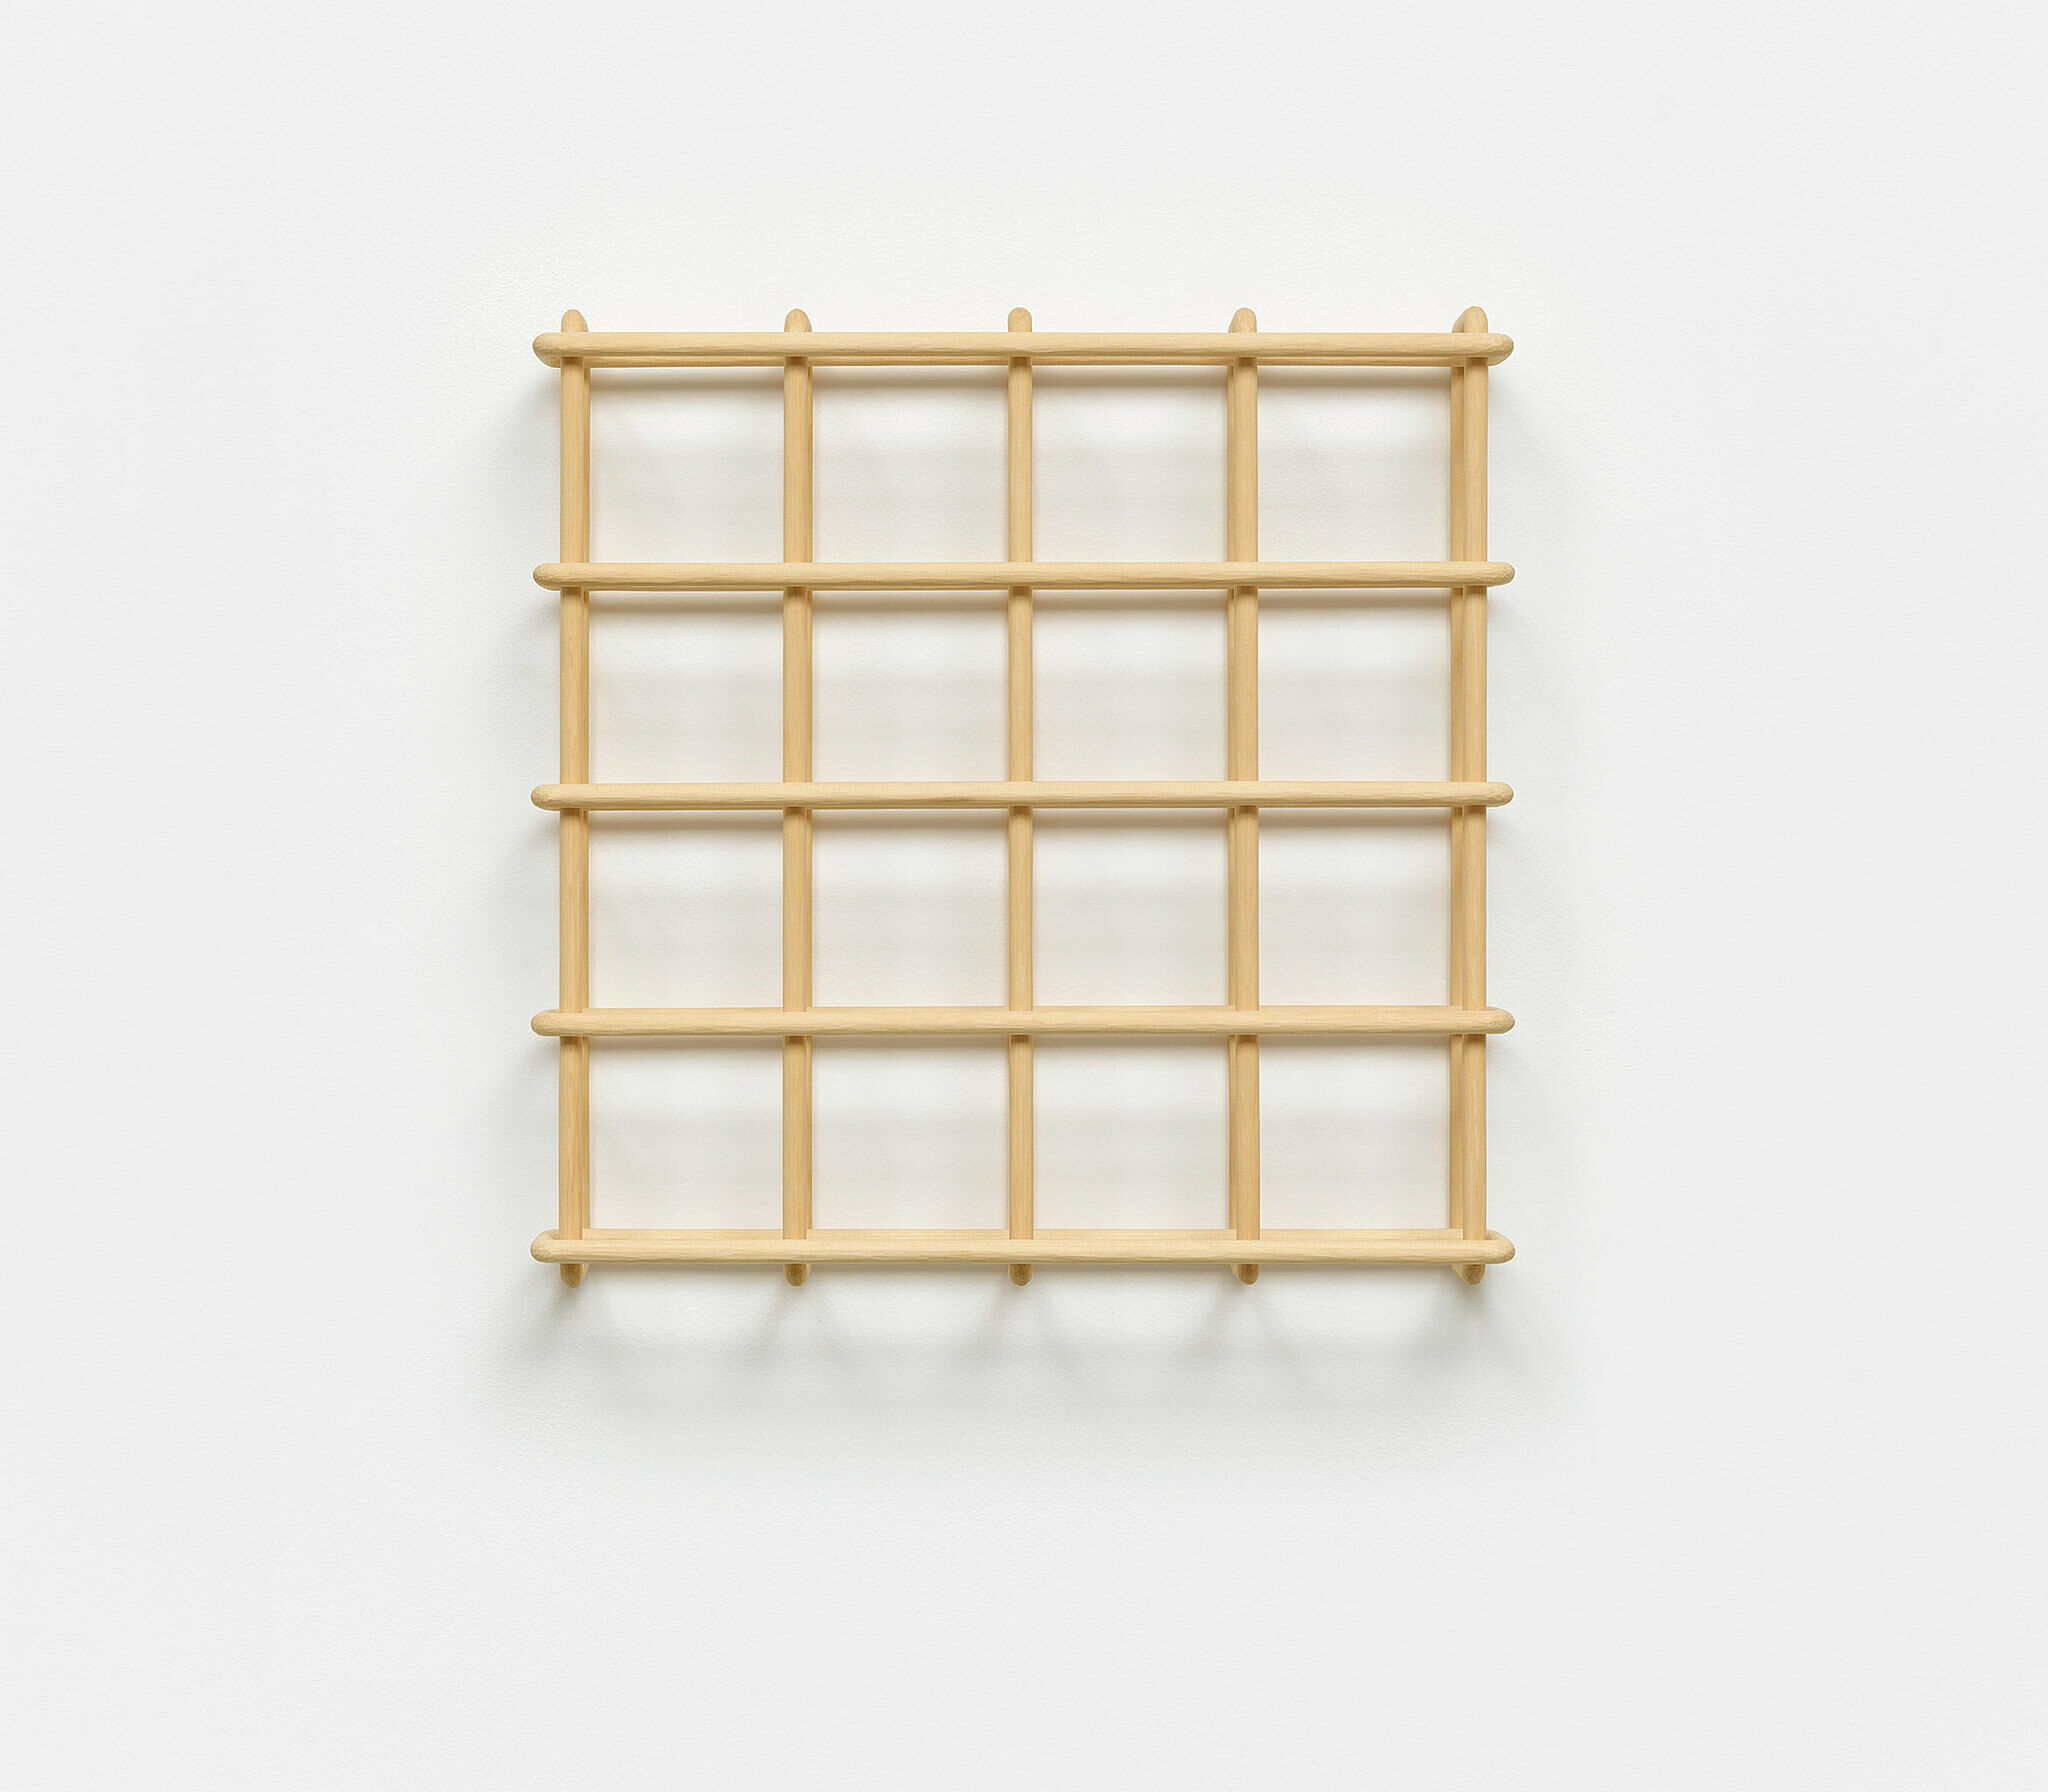 A grid made from wood